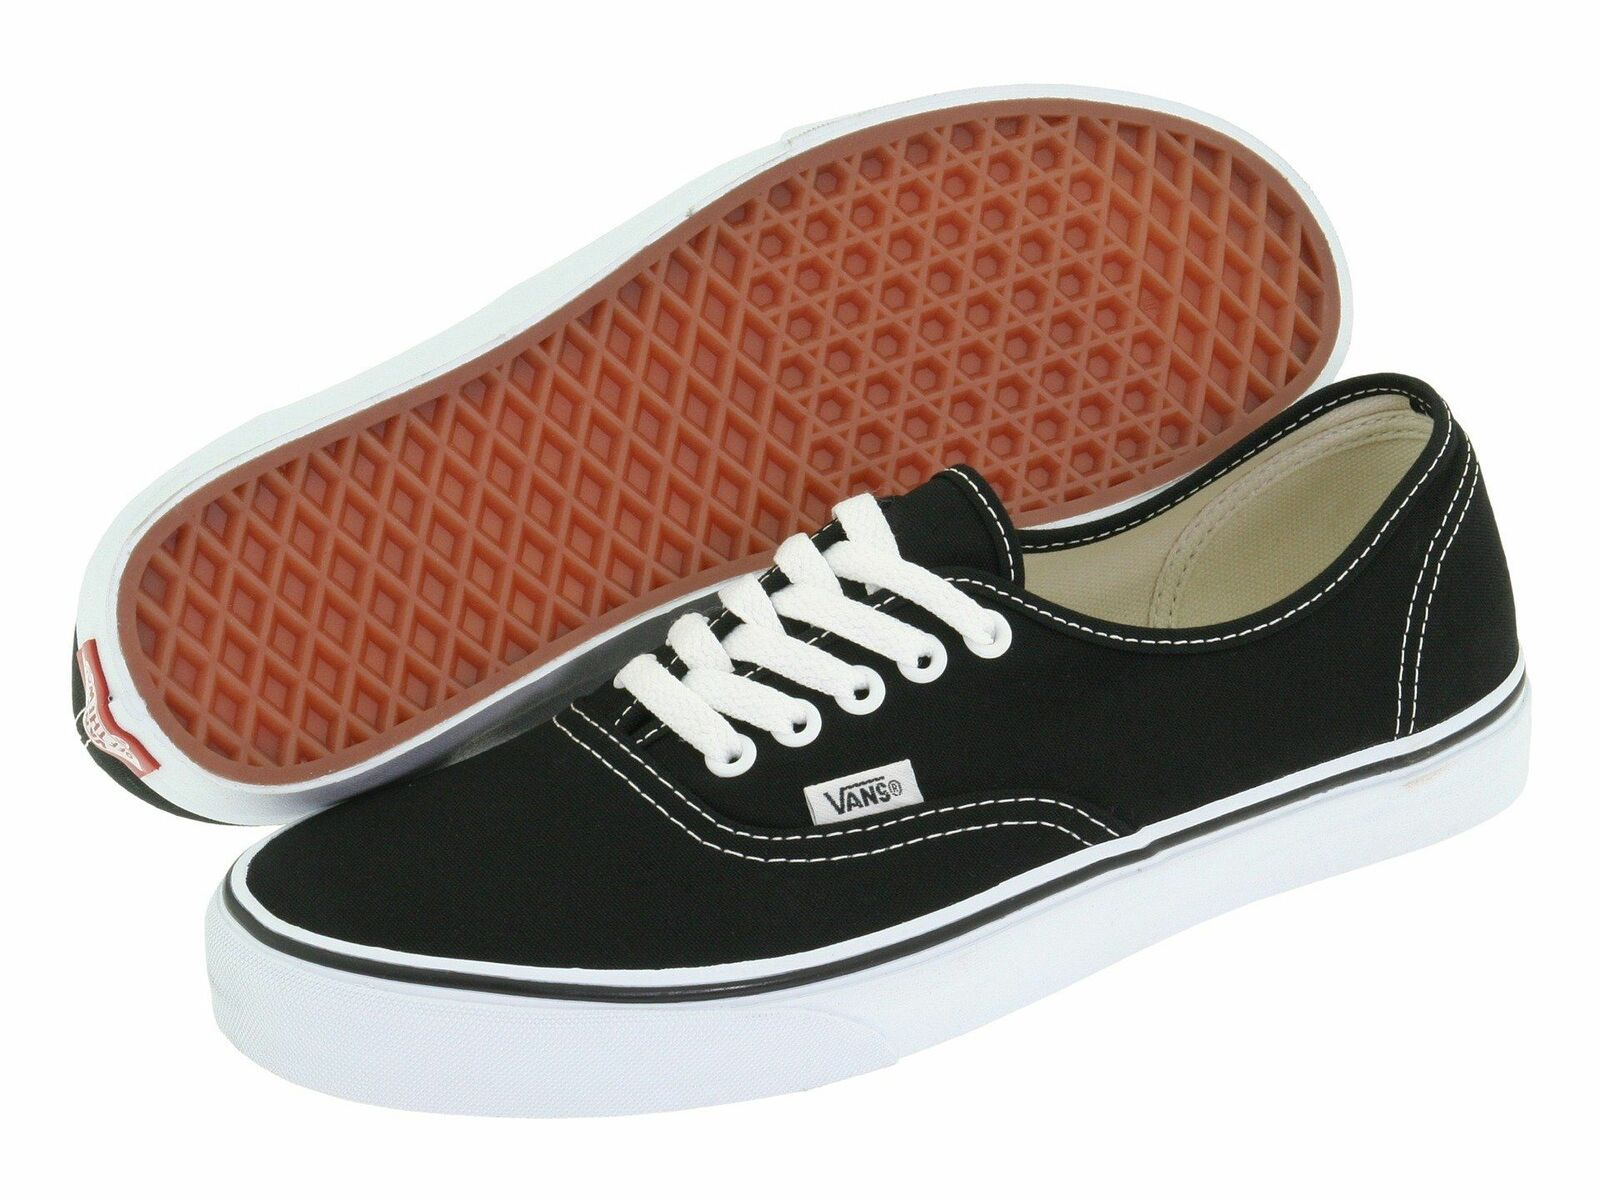 para mi complemento pedazo  Vans Authentic Black / White Mens Womens Classic Canvas Original Shoes -  Vans Shoes for Women - Ideas … | Vans authentic black, Vans authentic, Mens  athletic shoes